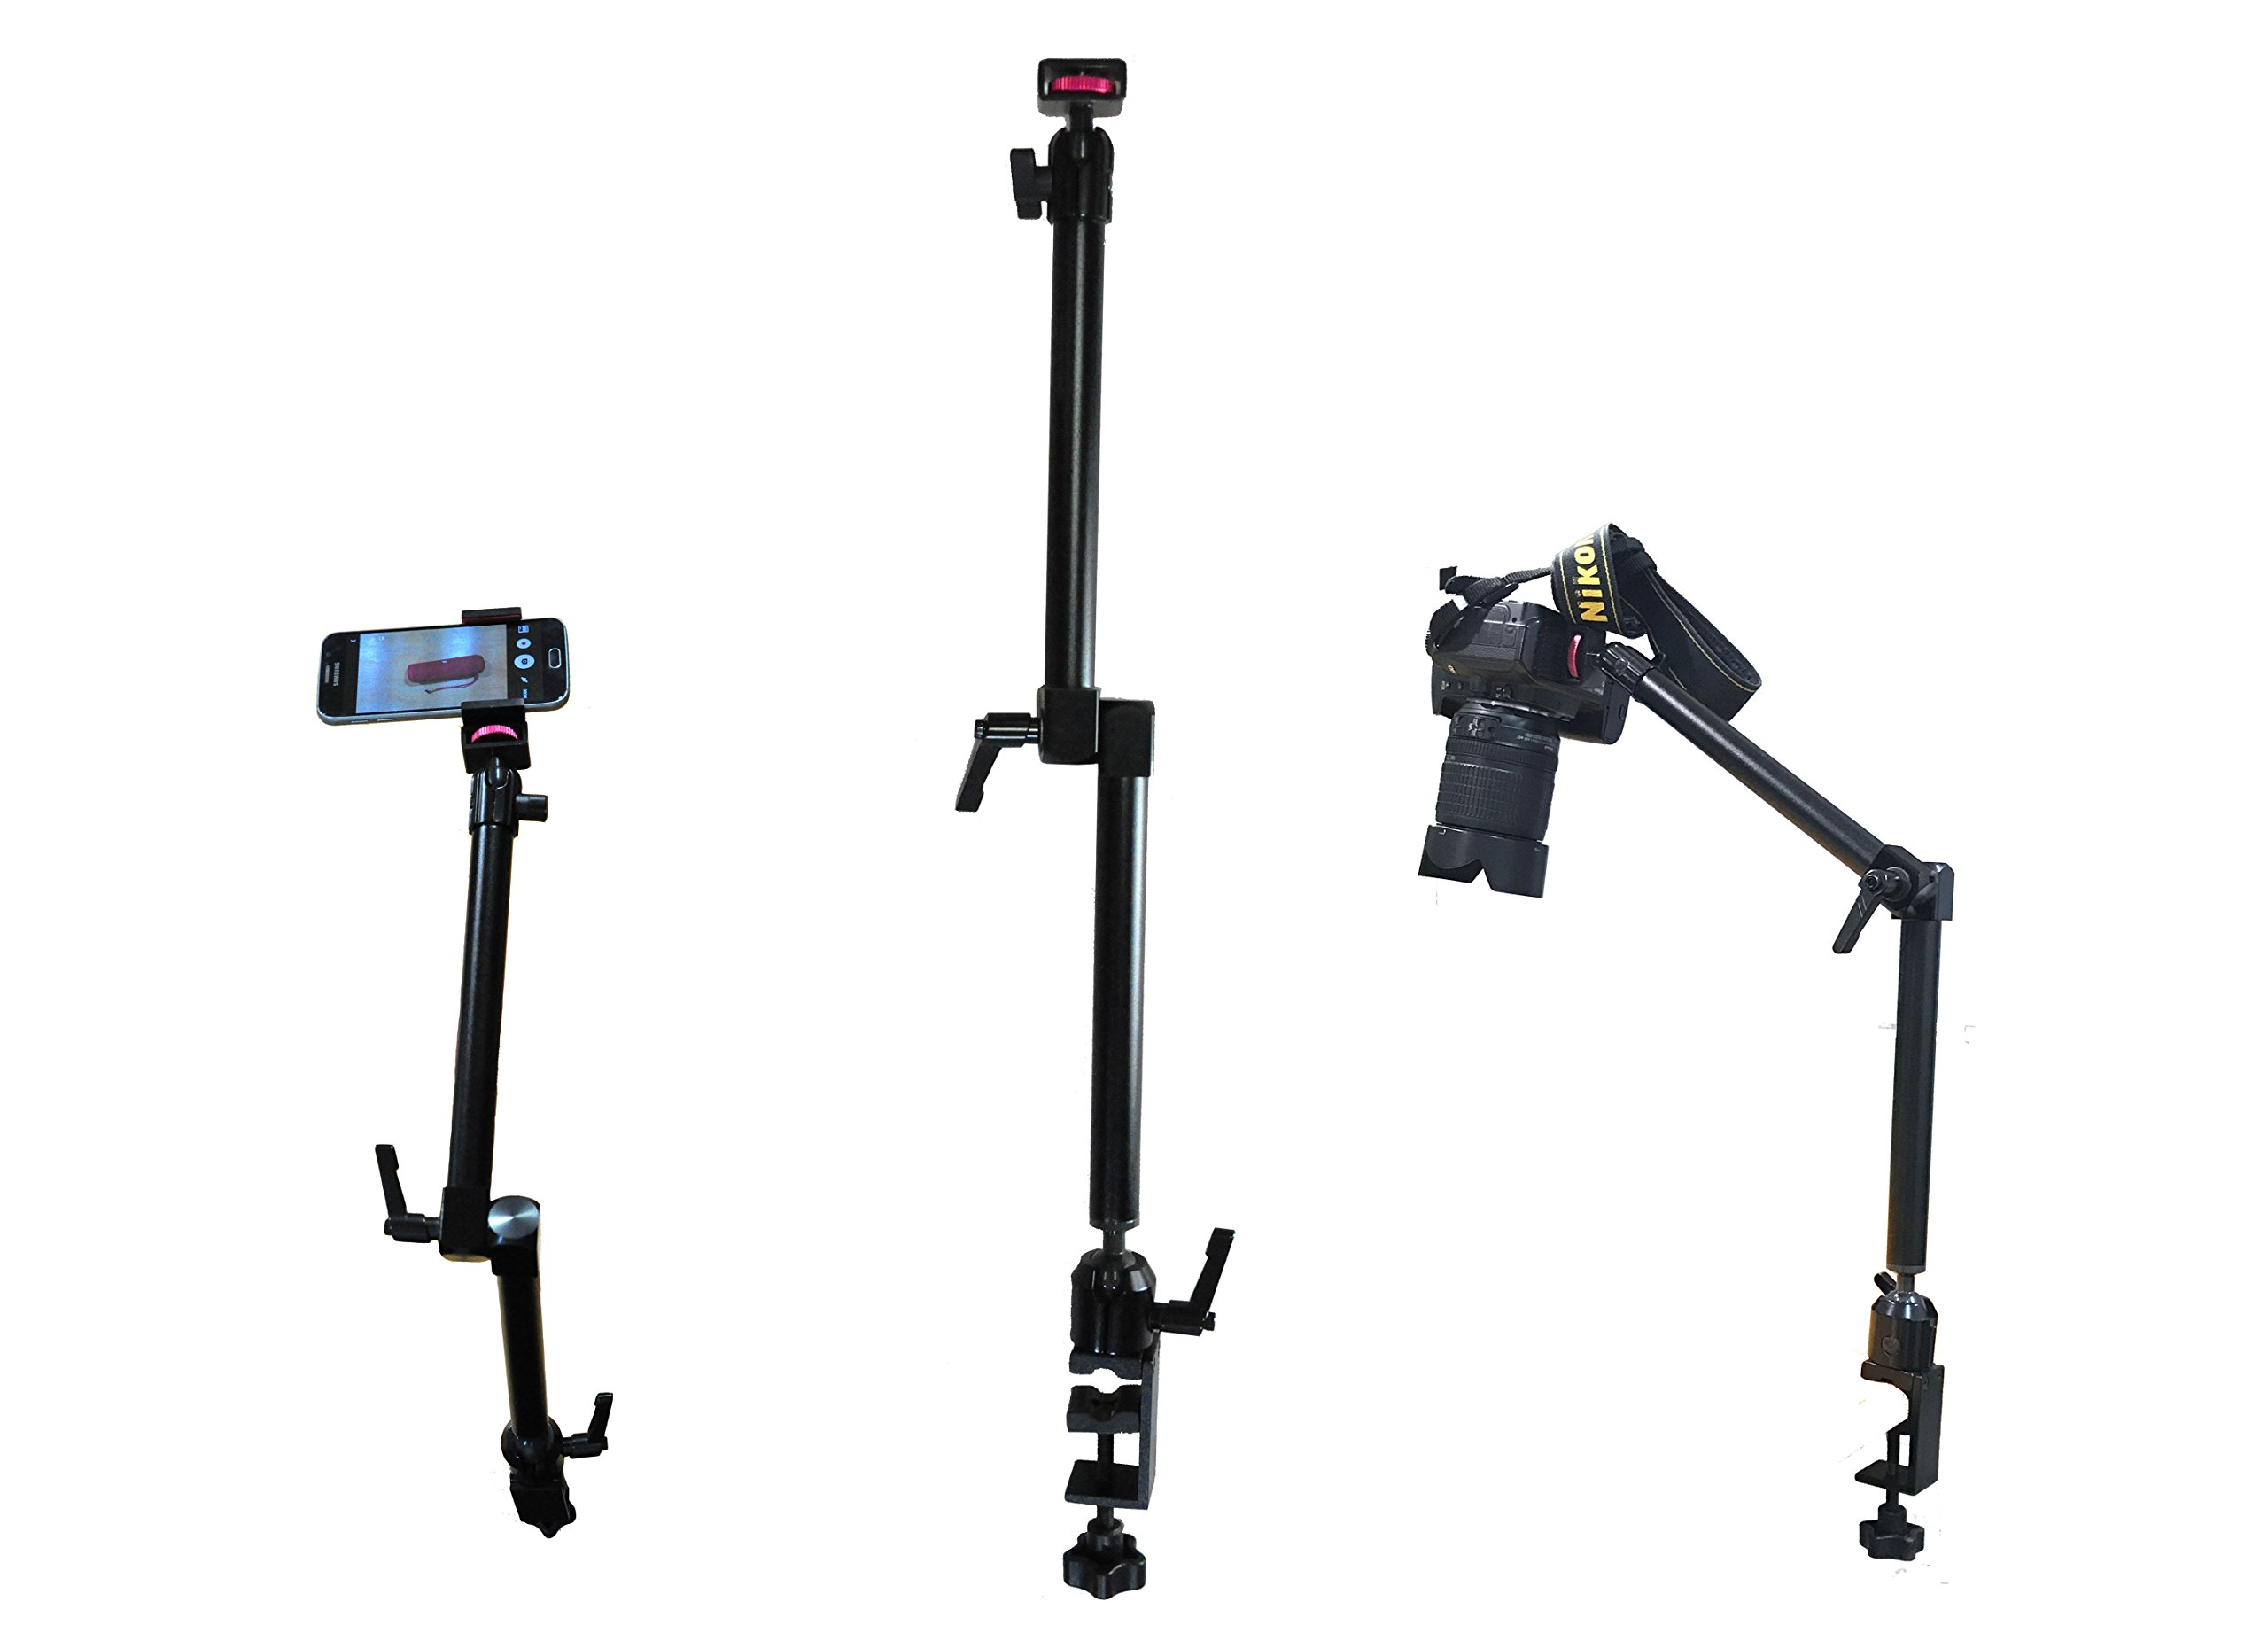 Arkscan MCM5 Tabletop Photography, Videography, Camera and Smartphone iPhone Table Clamp Mount with ¼-20 Camera Mounting Bolt for Nikon Sony Canon Olympus Panasonic Cameras